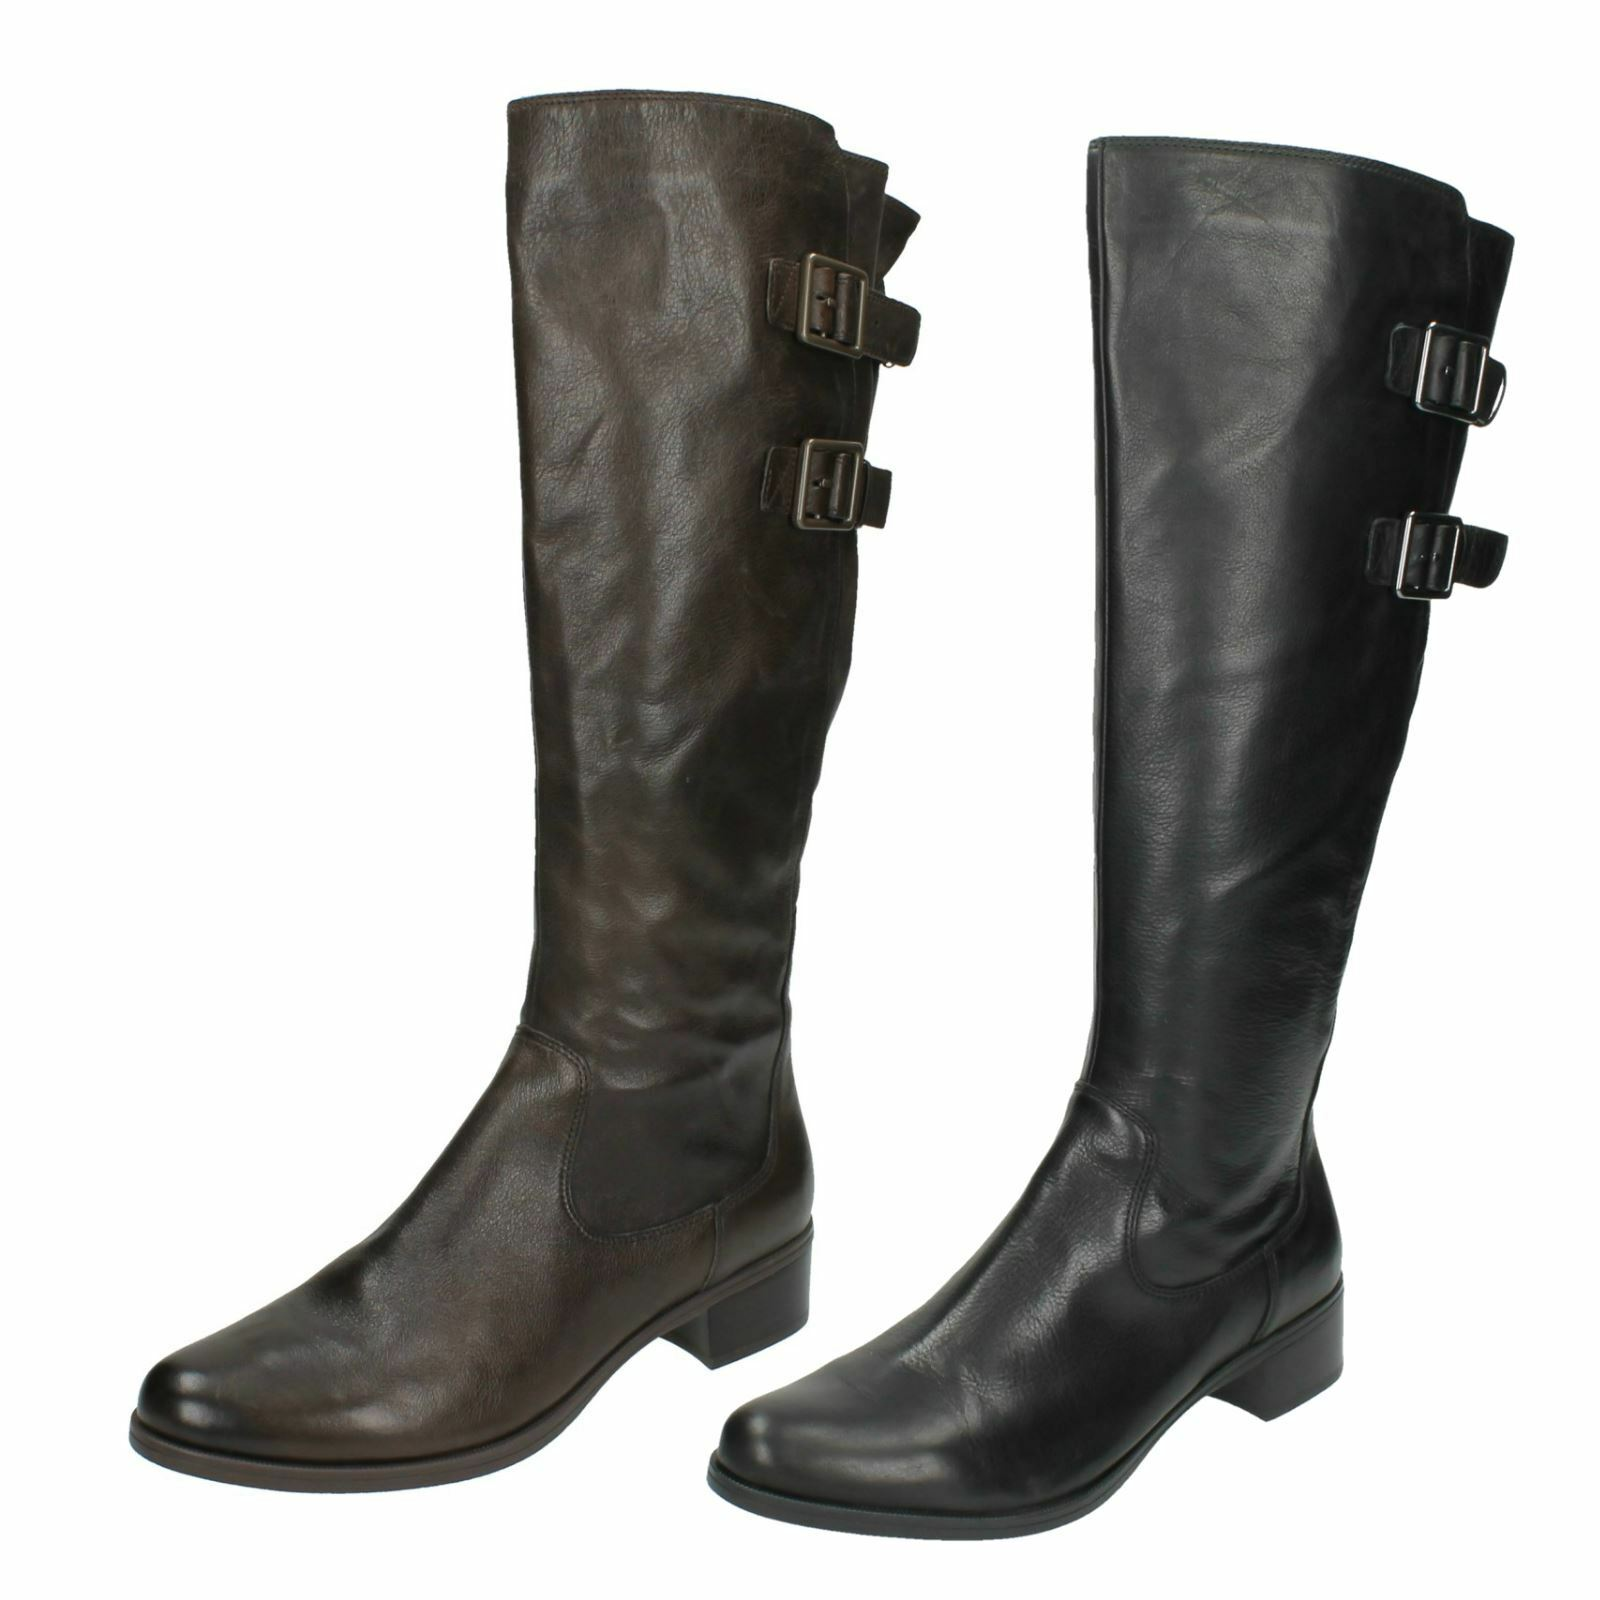 Ladies Clarks Leather Knee High Boots Likeable Me